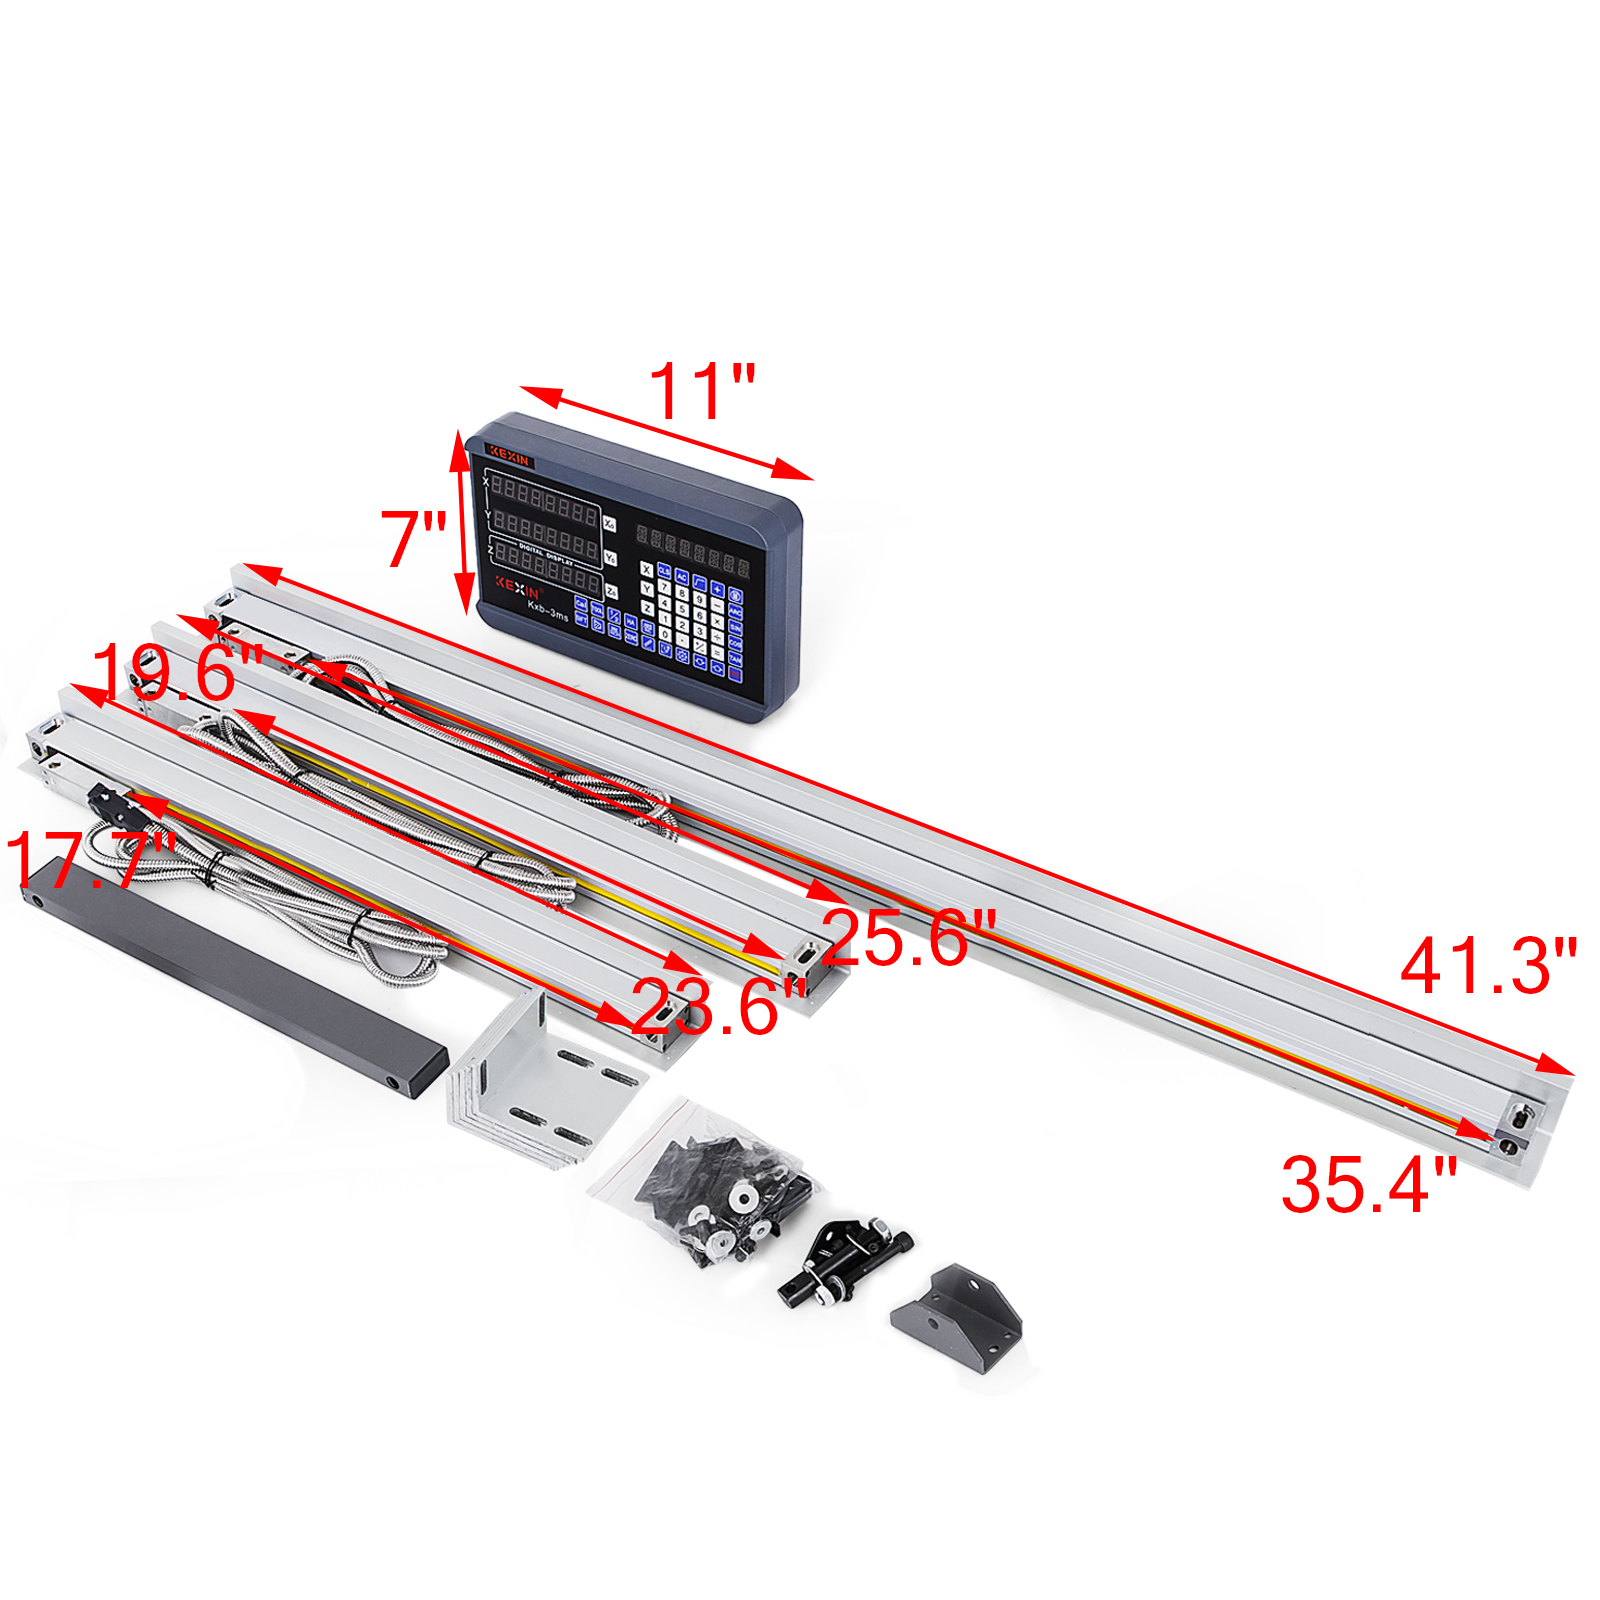 3 Axis Digital Readout DRO TTL Linear Glass Scale Encoder for Milling Lathe